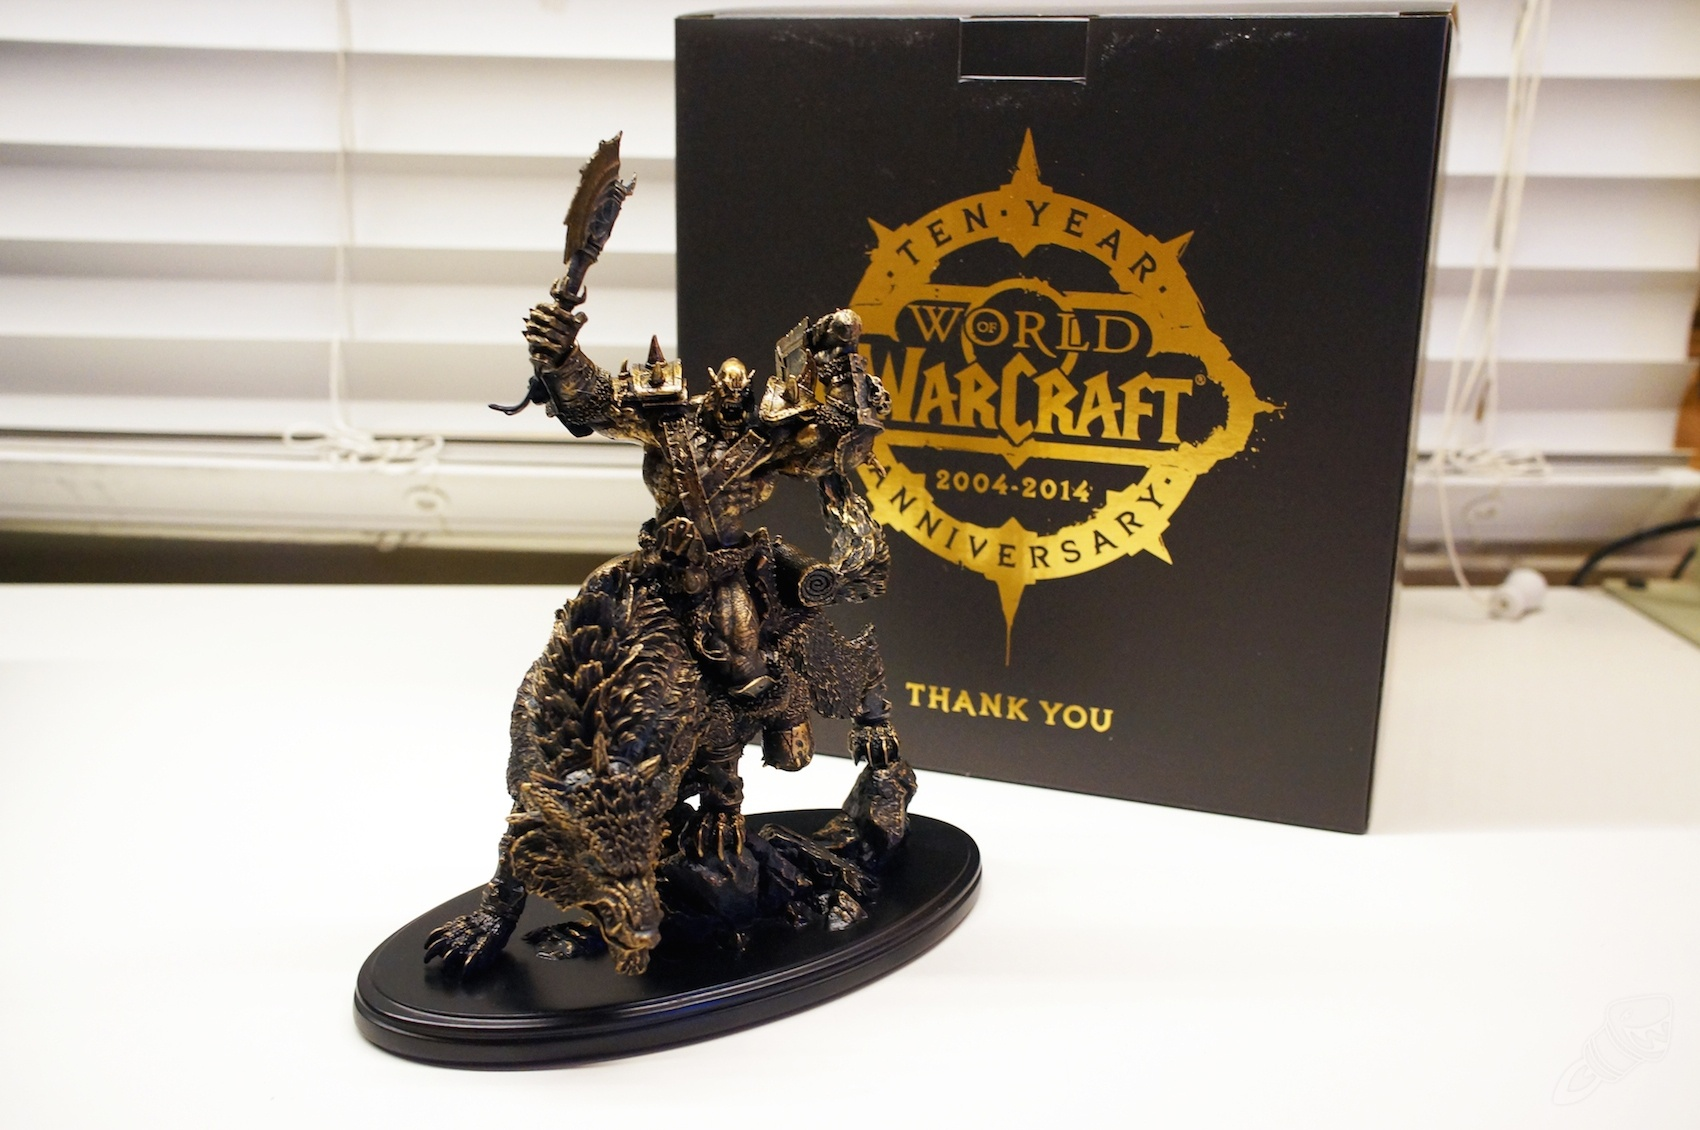 10th Anniversary Gift Orc Statue Photographs Eligibility Criteria